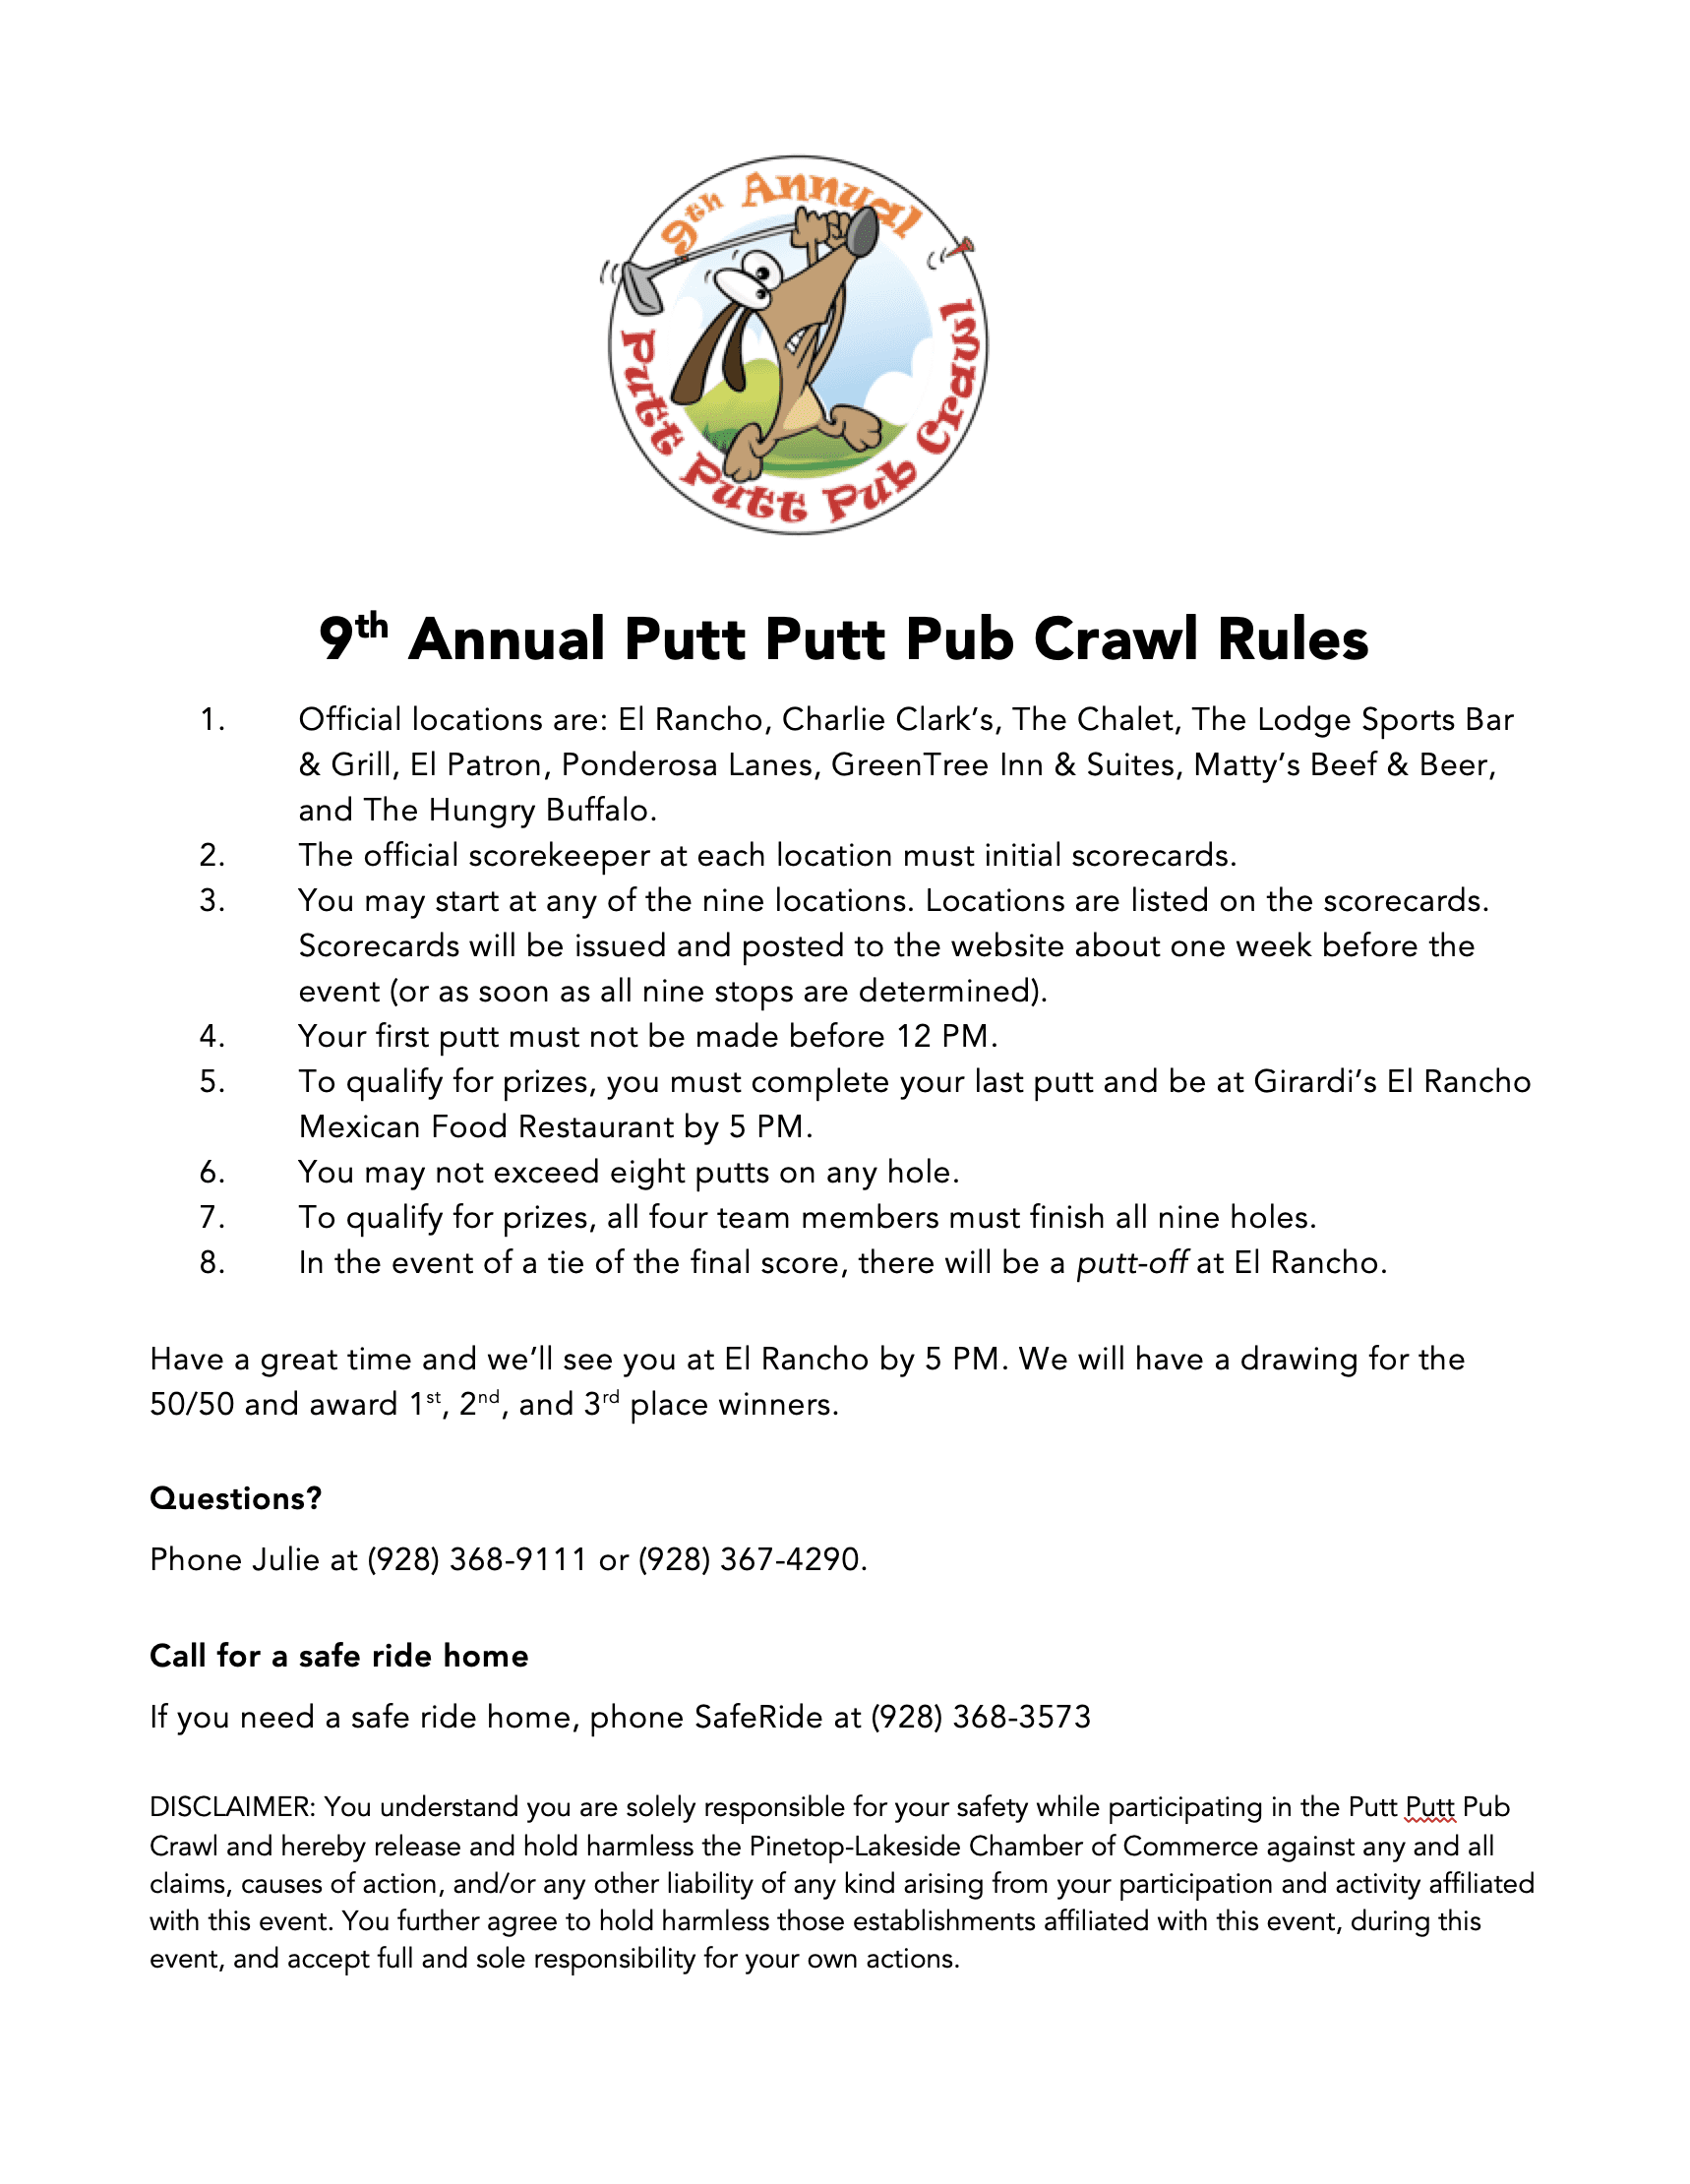 Putt Putt Pub Crawl Official Rules